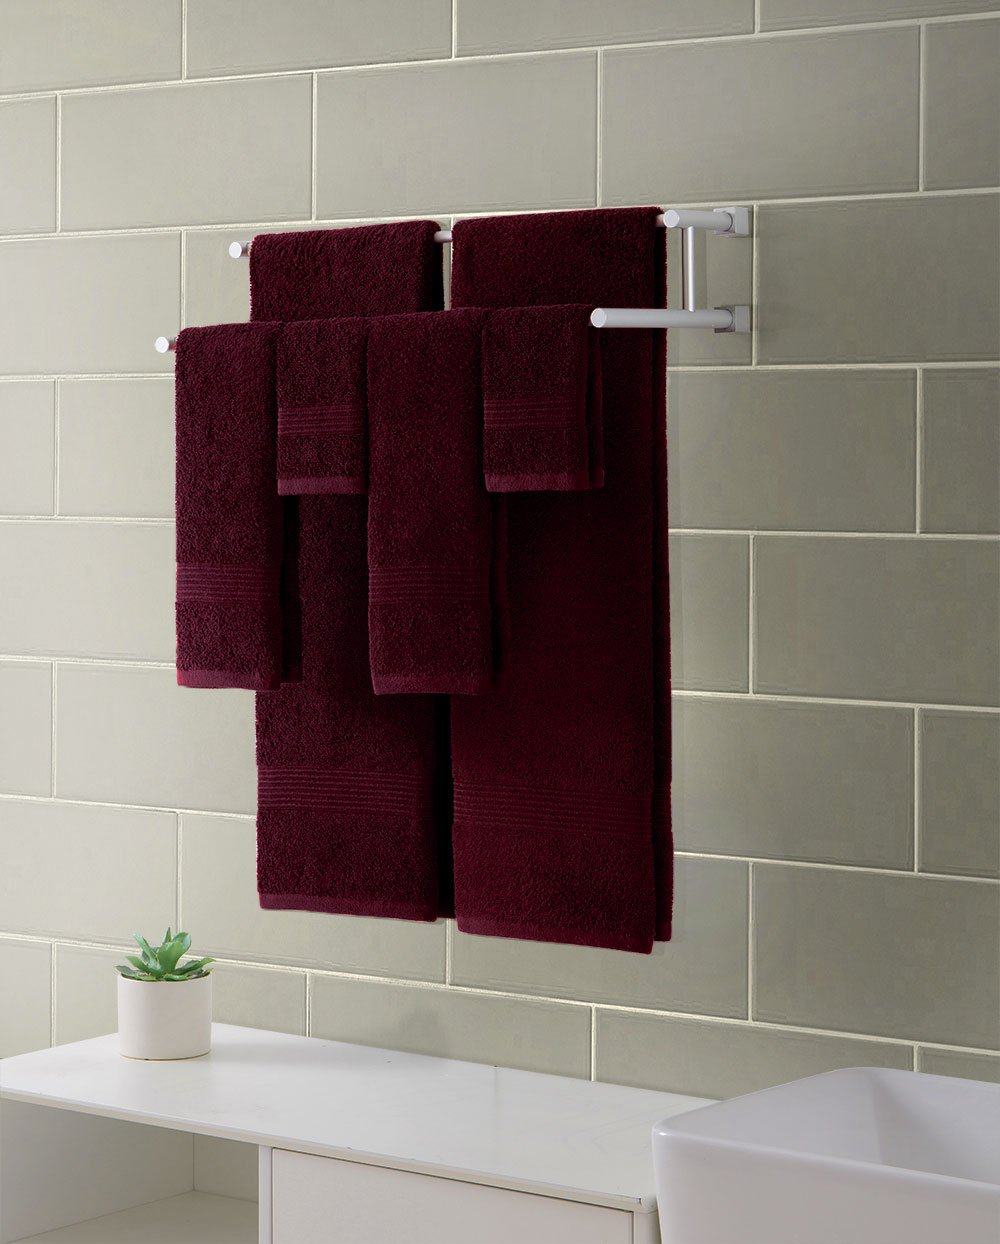 Ribbed Luxury Bath Towel 6 Piece Set 100% Cotton, Burgundy Red (2 Bath Towels 54'' x 27'', 2 Hand Towels 28'' x 16'' and 2 Wash Cloths 13'' x 13'') by HowPlumb (Image #4)